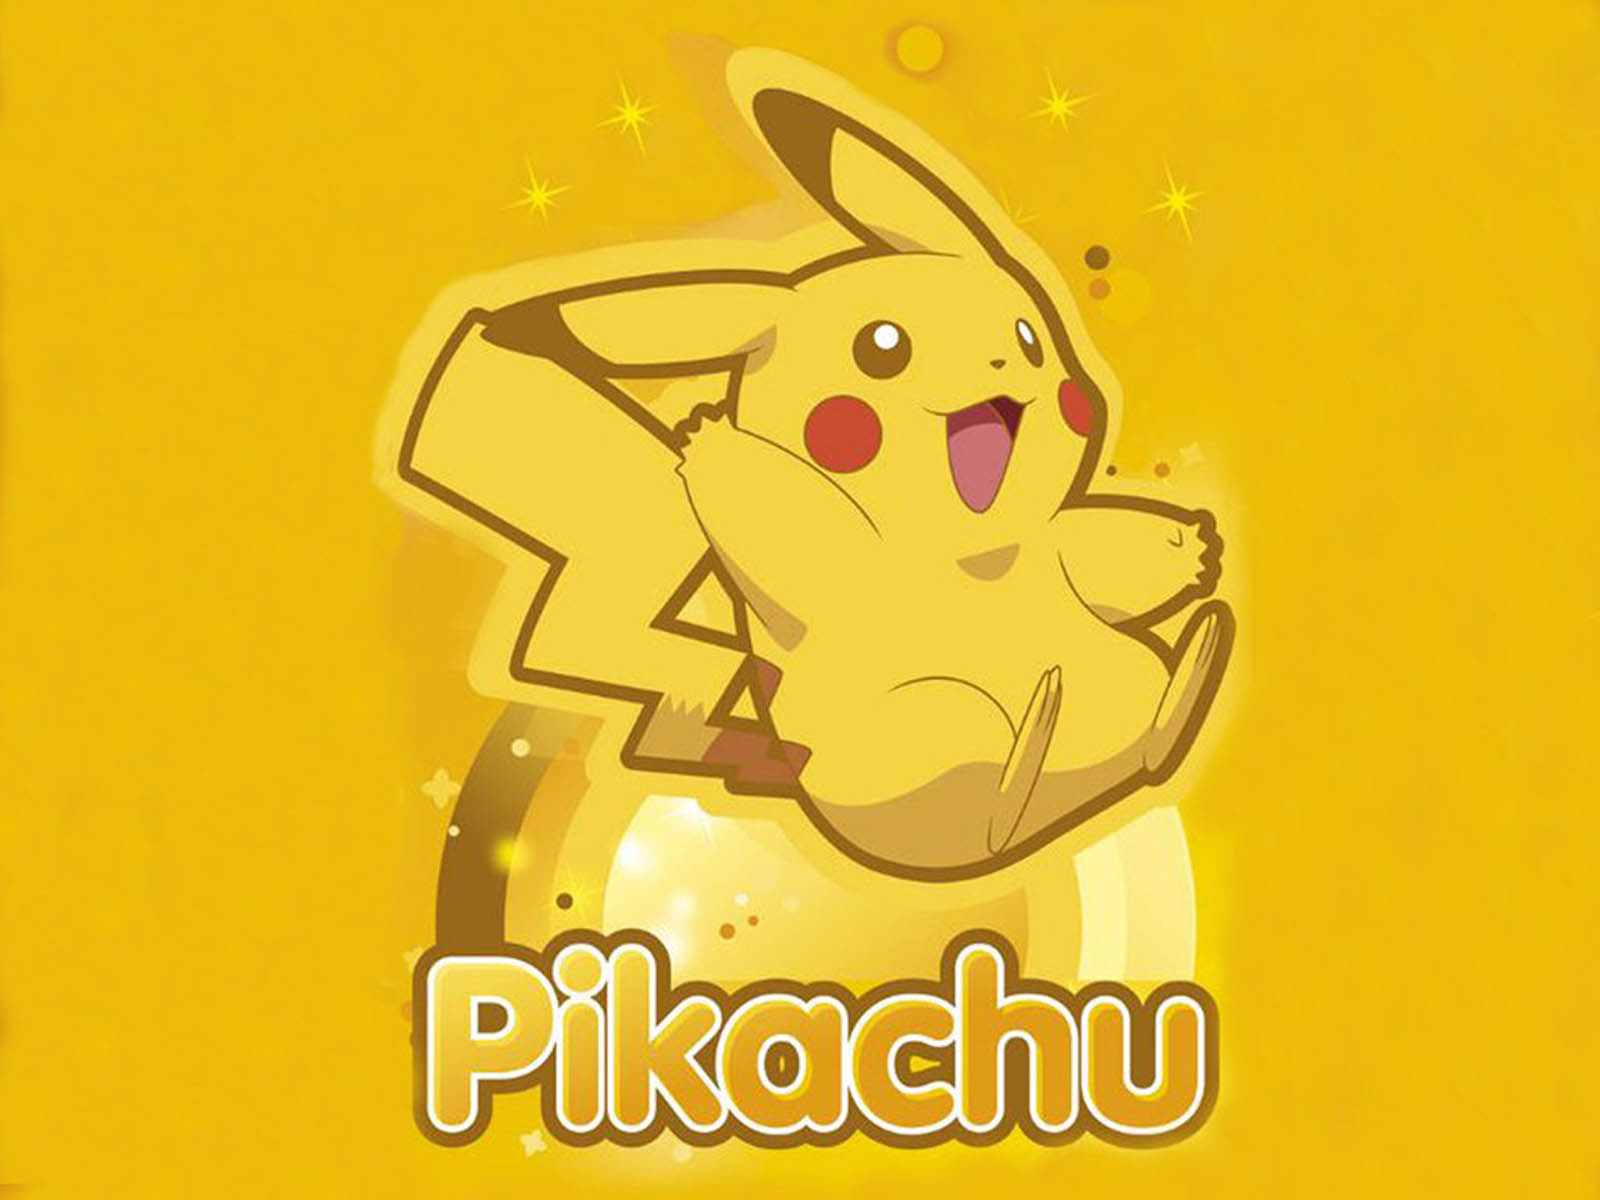 Pikachu wallpapers high quality download free - Cute pikachu love wallpaper ...